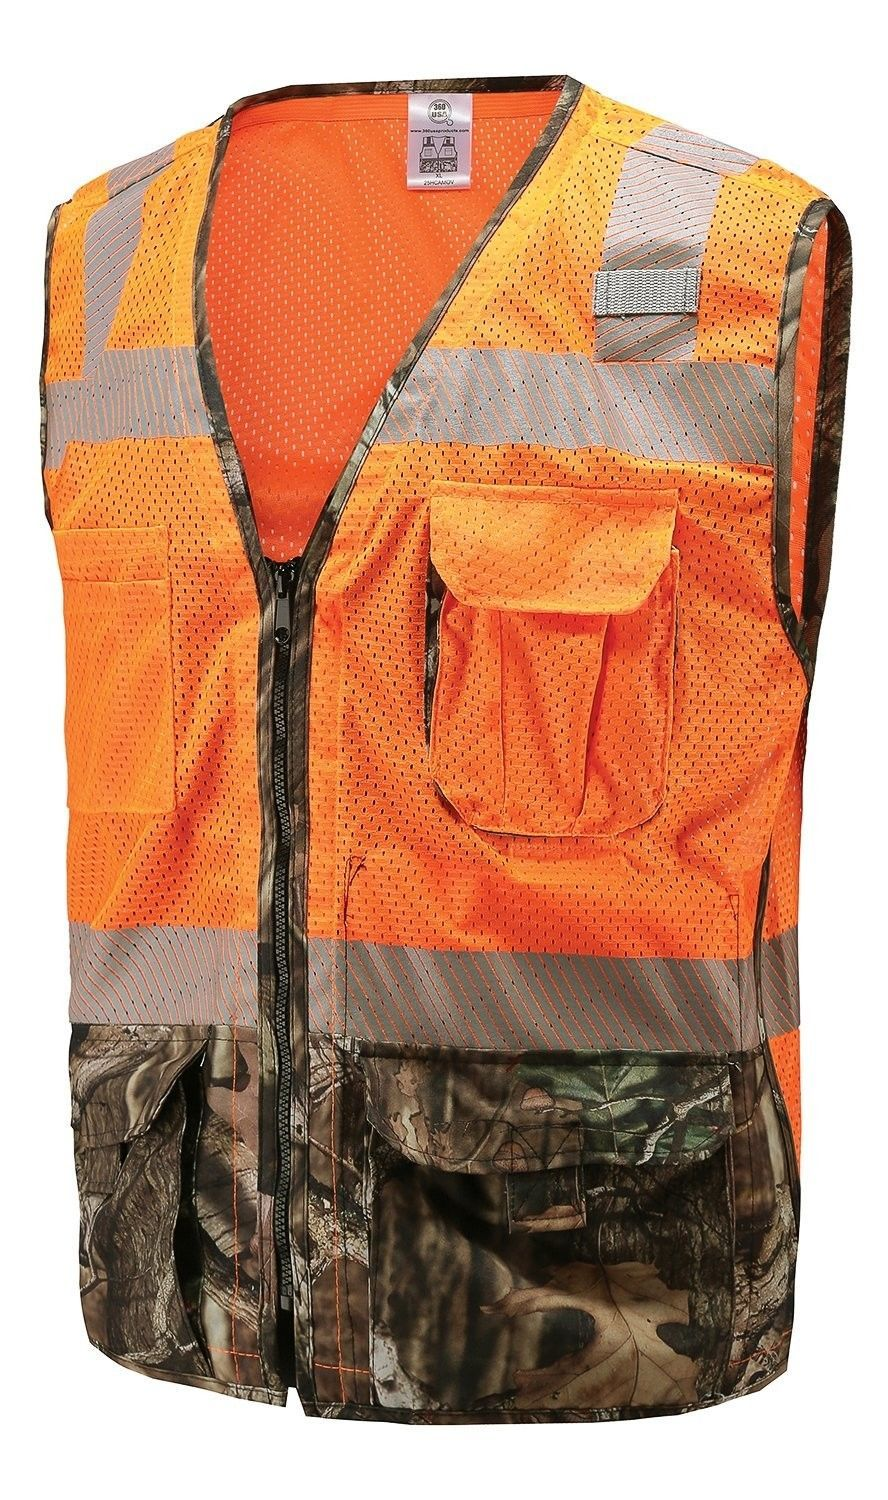 360 USA Sportsman Safety Hunting Vest Blaze Orange and